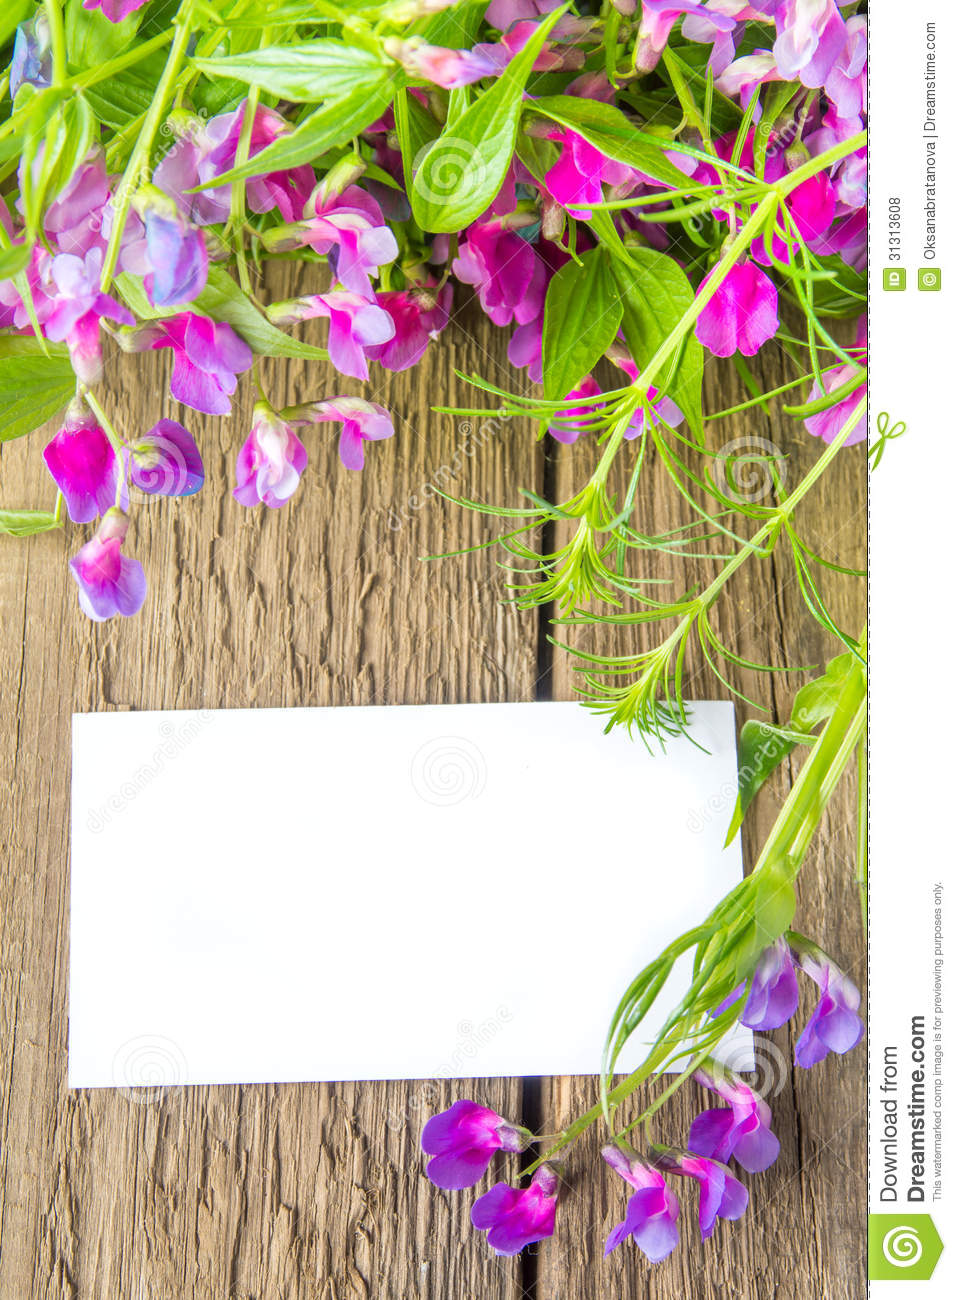 Blank Card And Spring Flowers Stock Photo - Image: 31313608